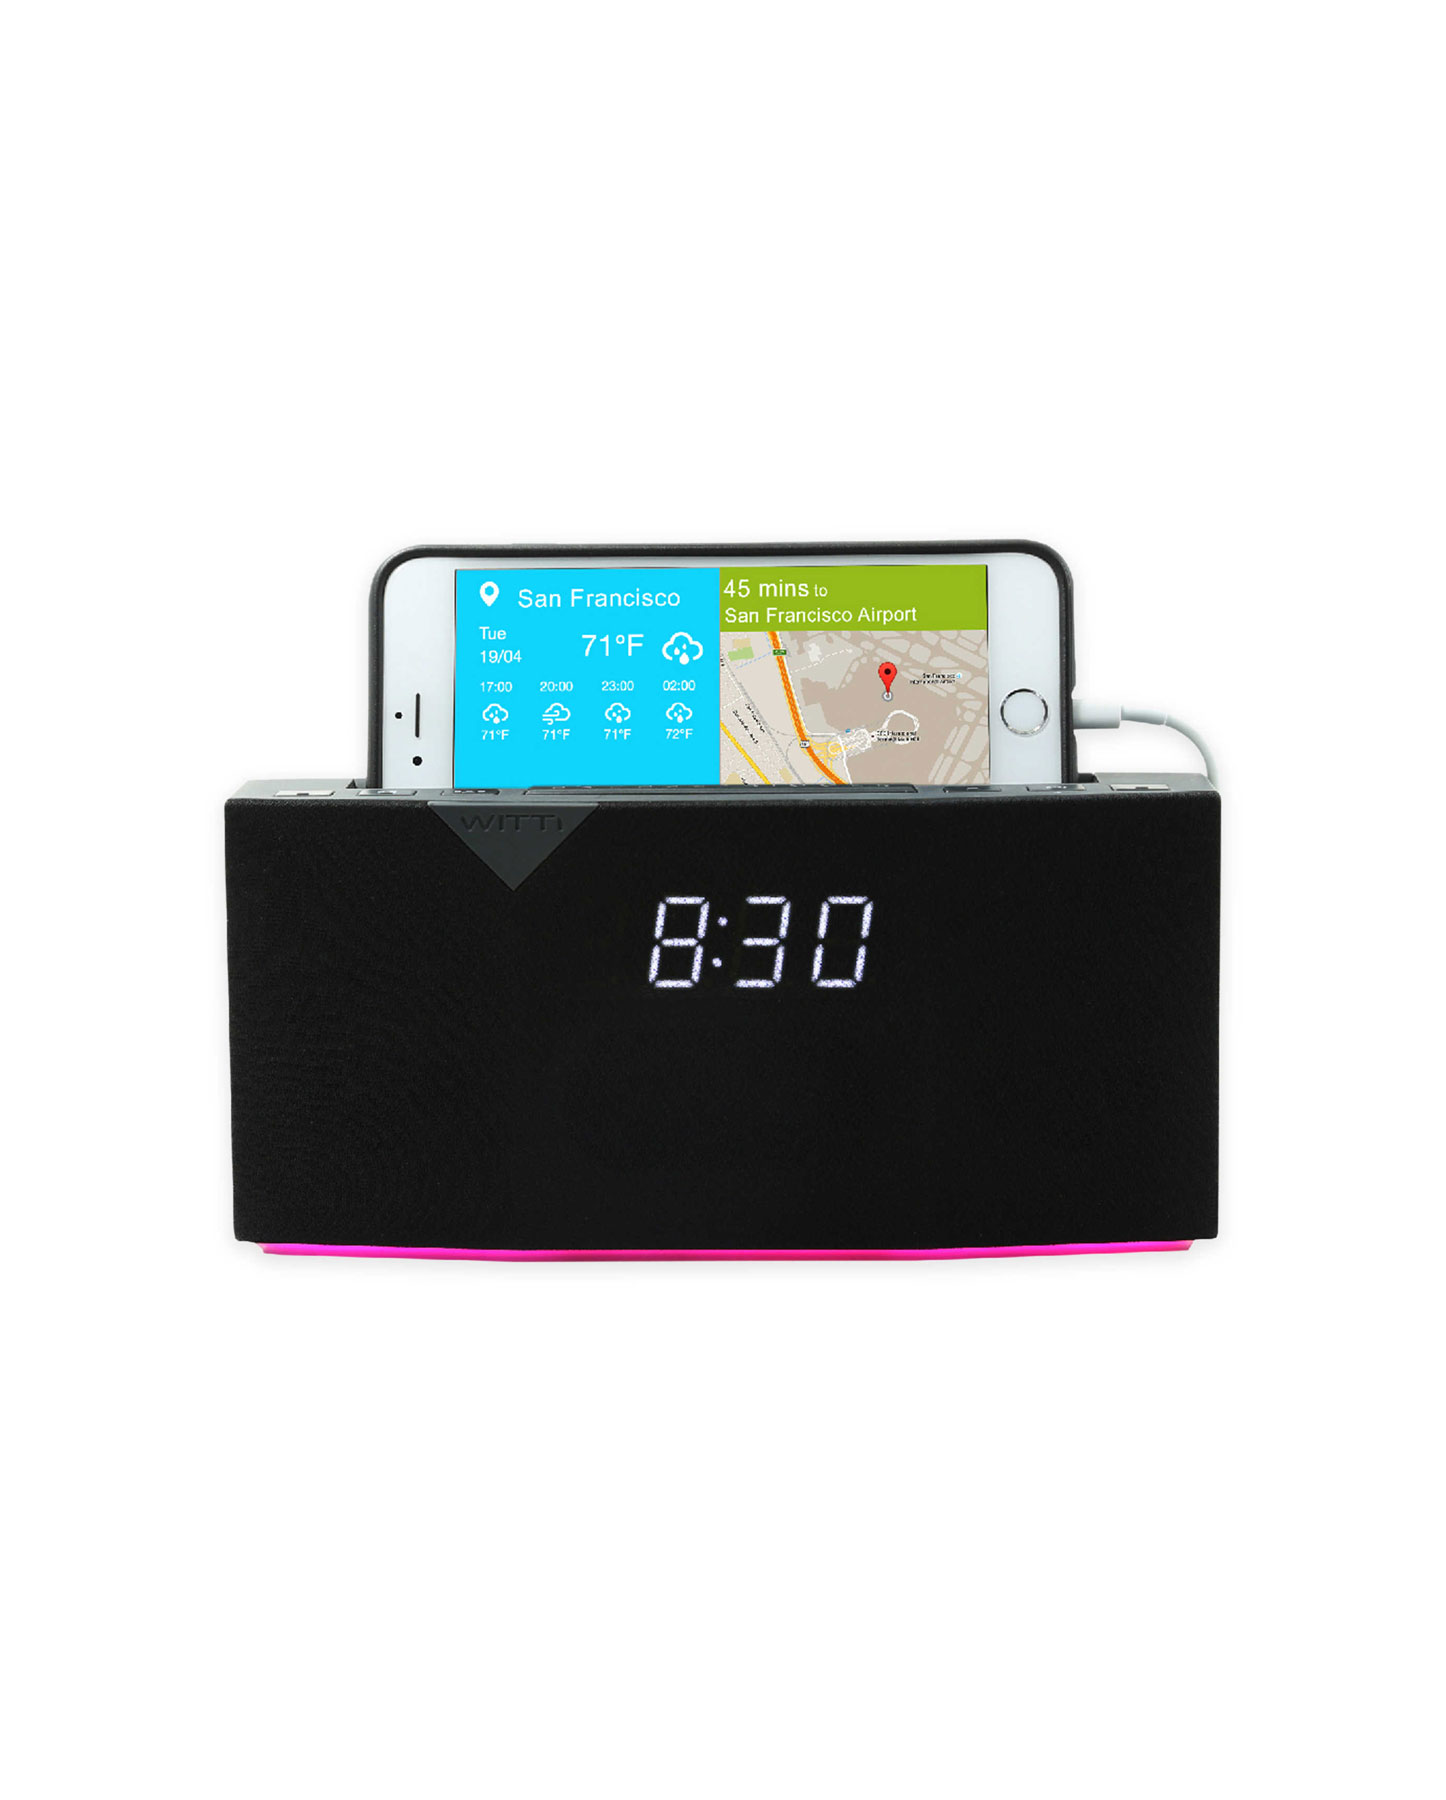 Cool Alarm Clocks That Arent Annoying At All Real Simple